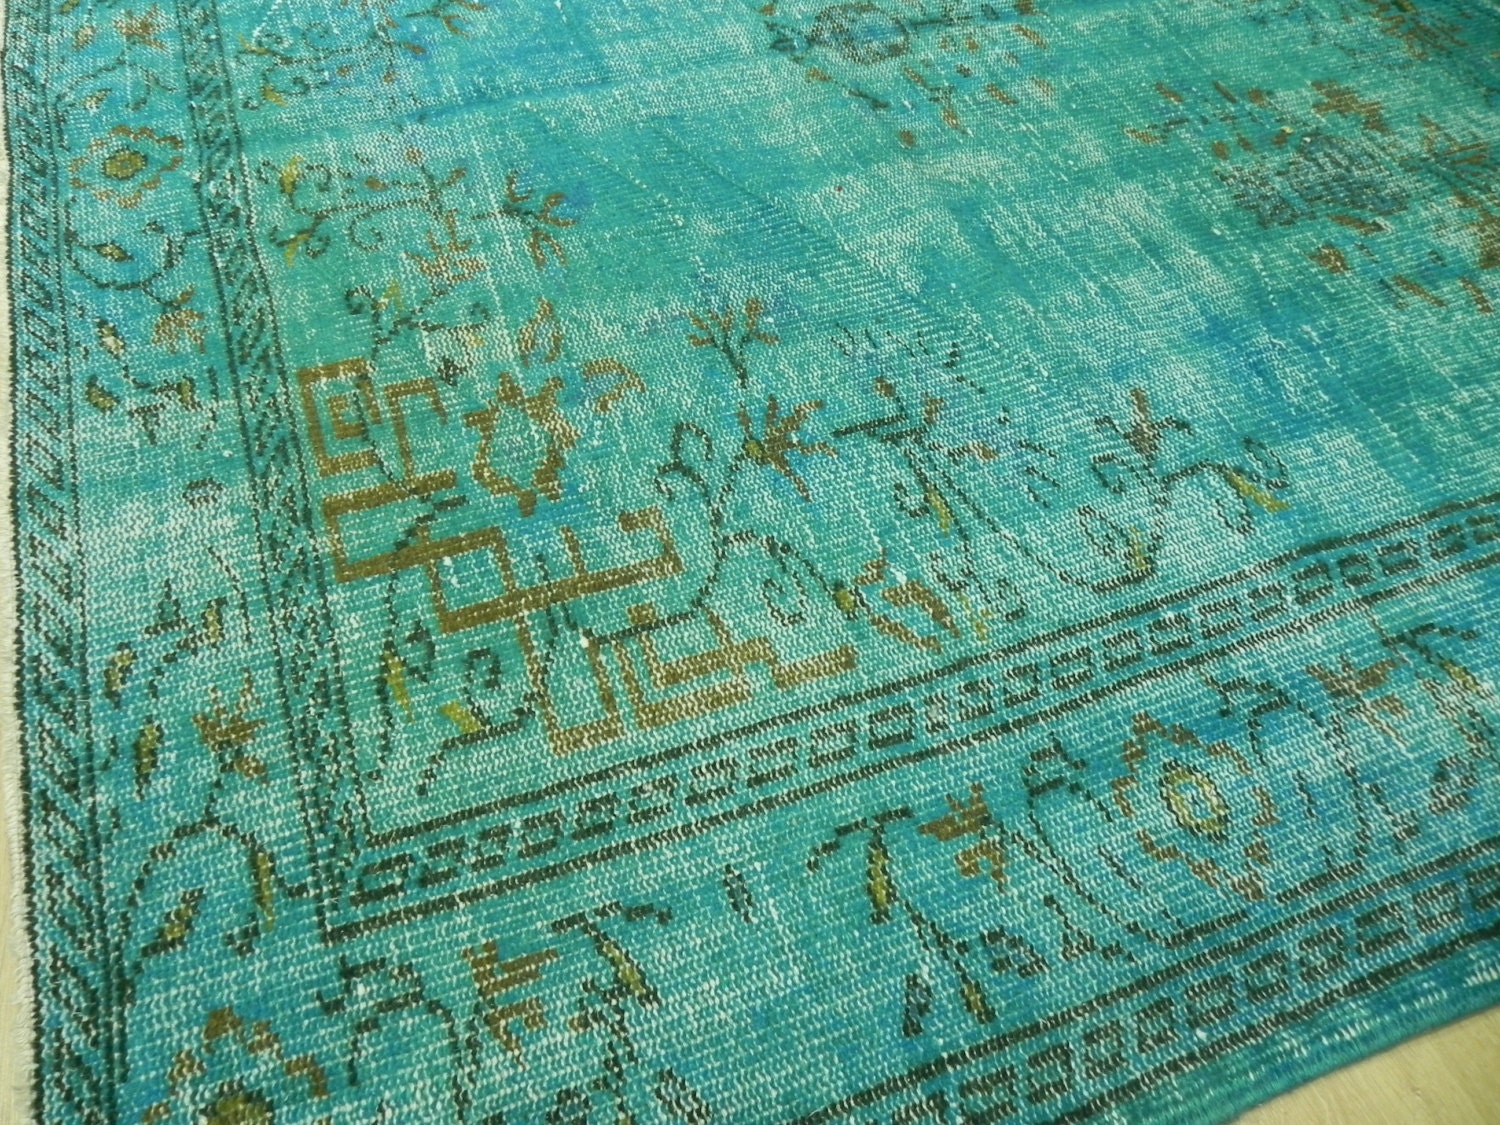 ON SALE - 6.6x10.2 Ft (210x310 cm) - Turquoise Blue OVERDYED Vintage Handmade Turkish Rug, wool & cotton - WeMakeRugs